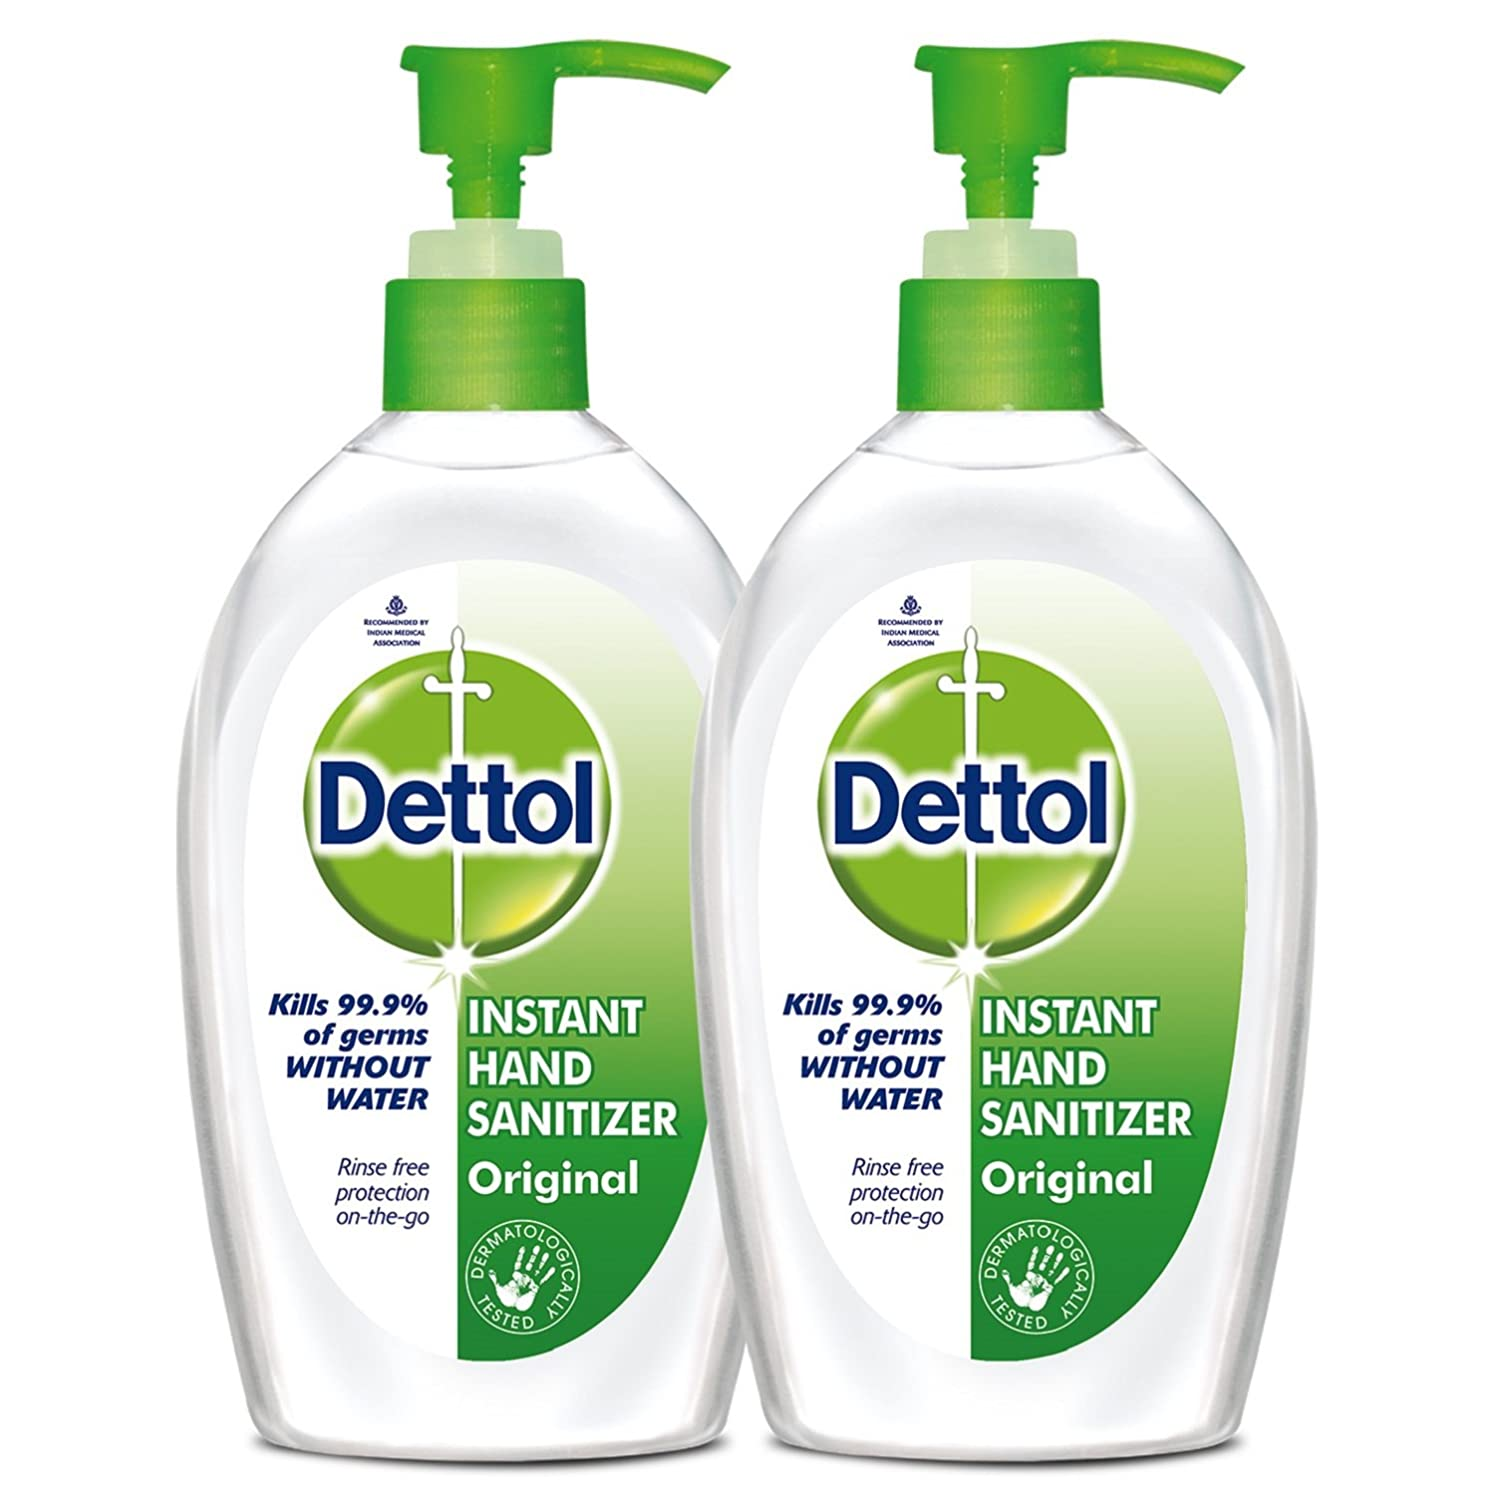 Dettol Original Instant Hand Sanitizer - 200 ml (Pack of 2)